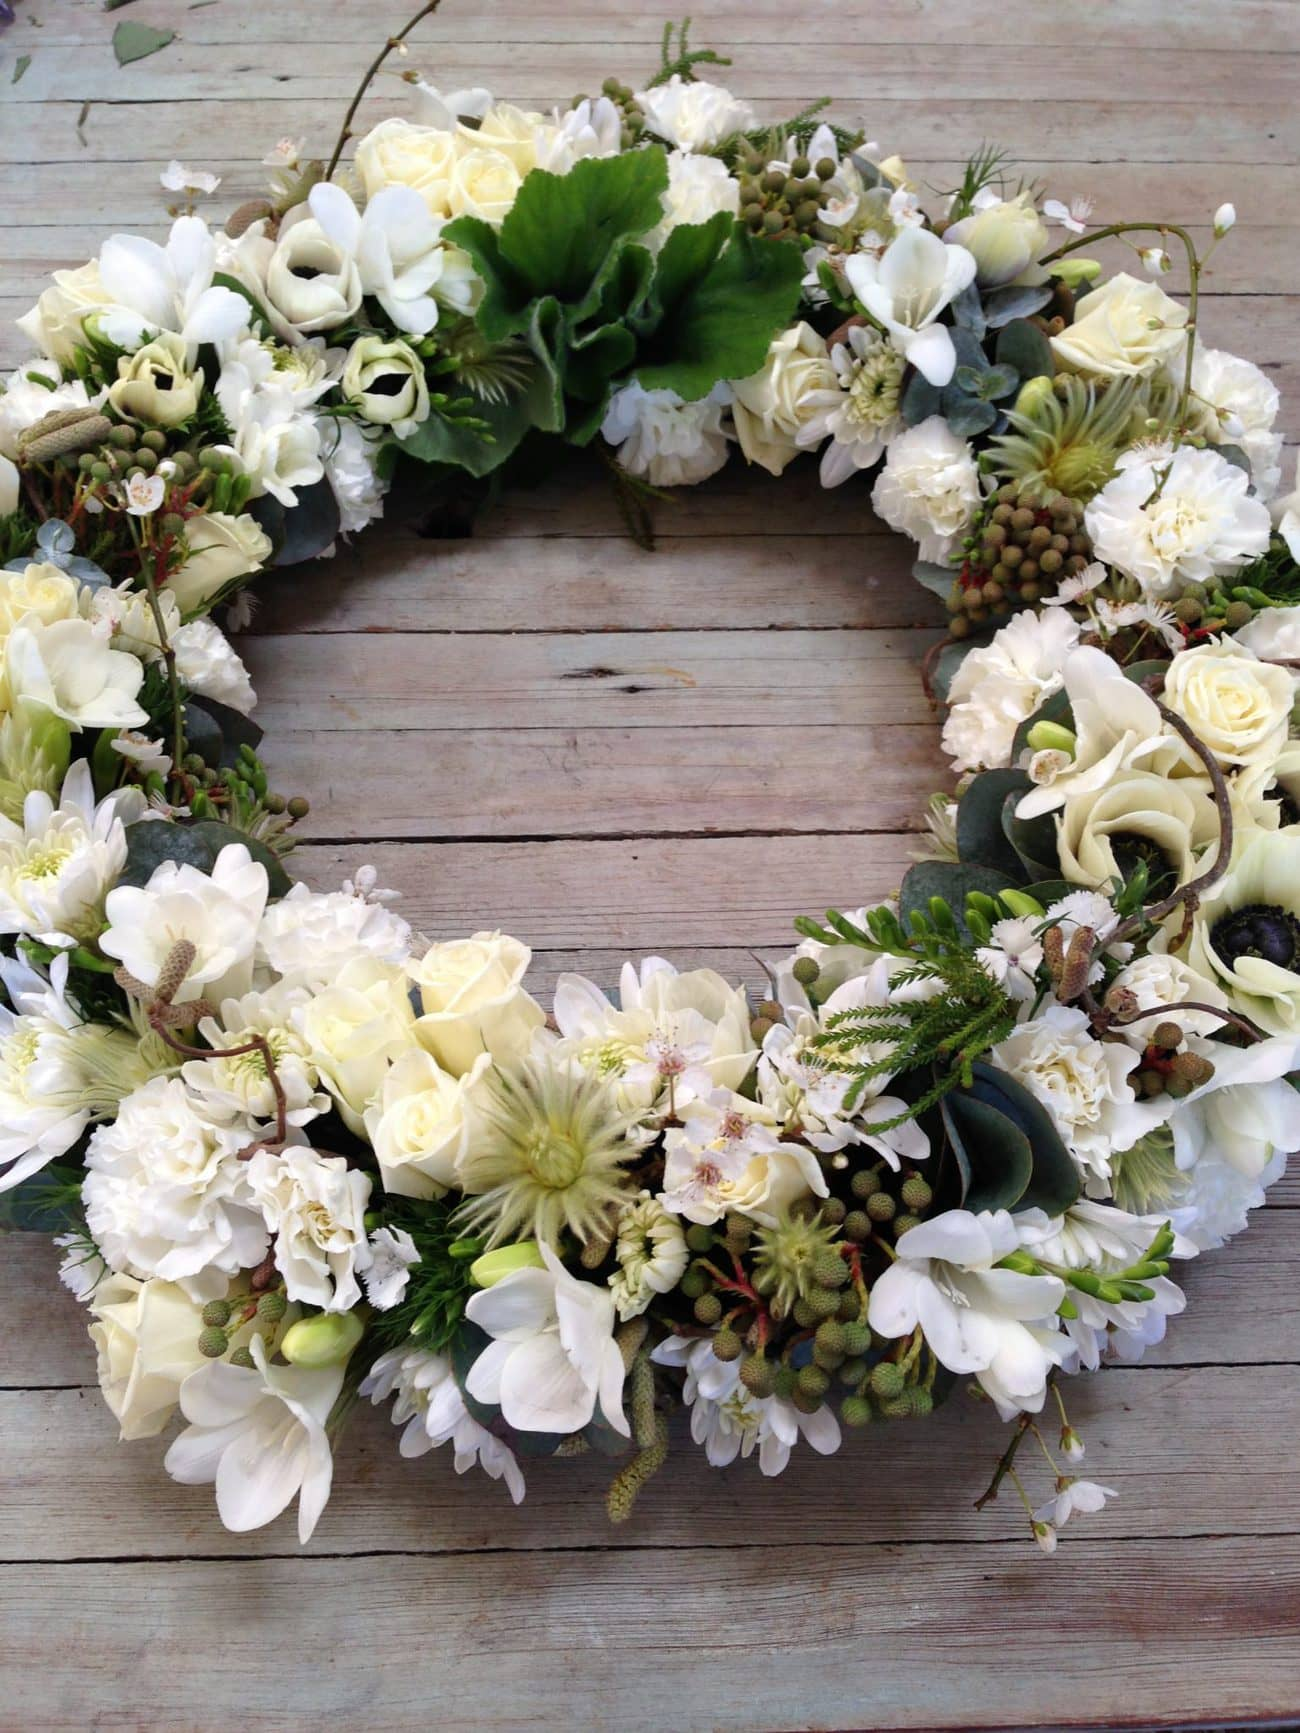 Sympathy and bereavement flowers mrs bottomleys flowers sympathy and bereavement flowers izmirmasajfo